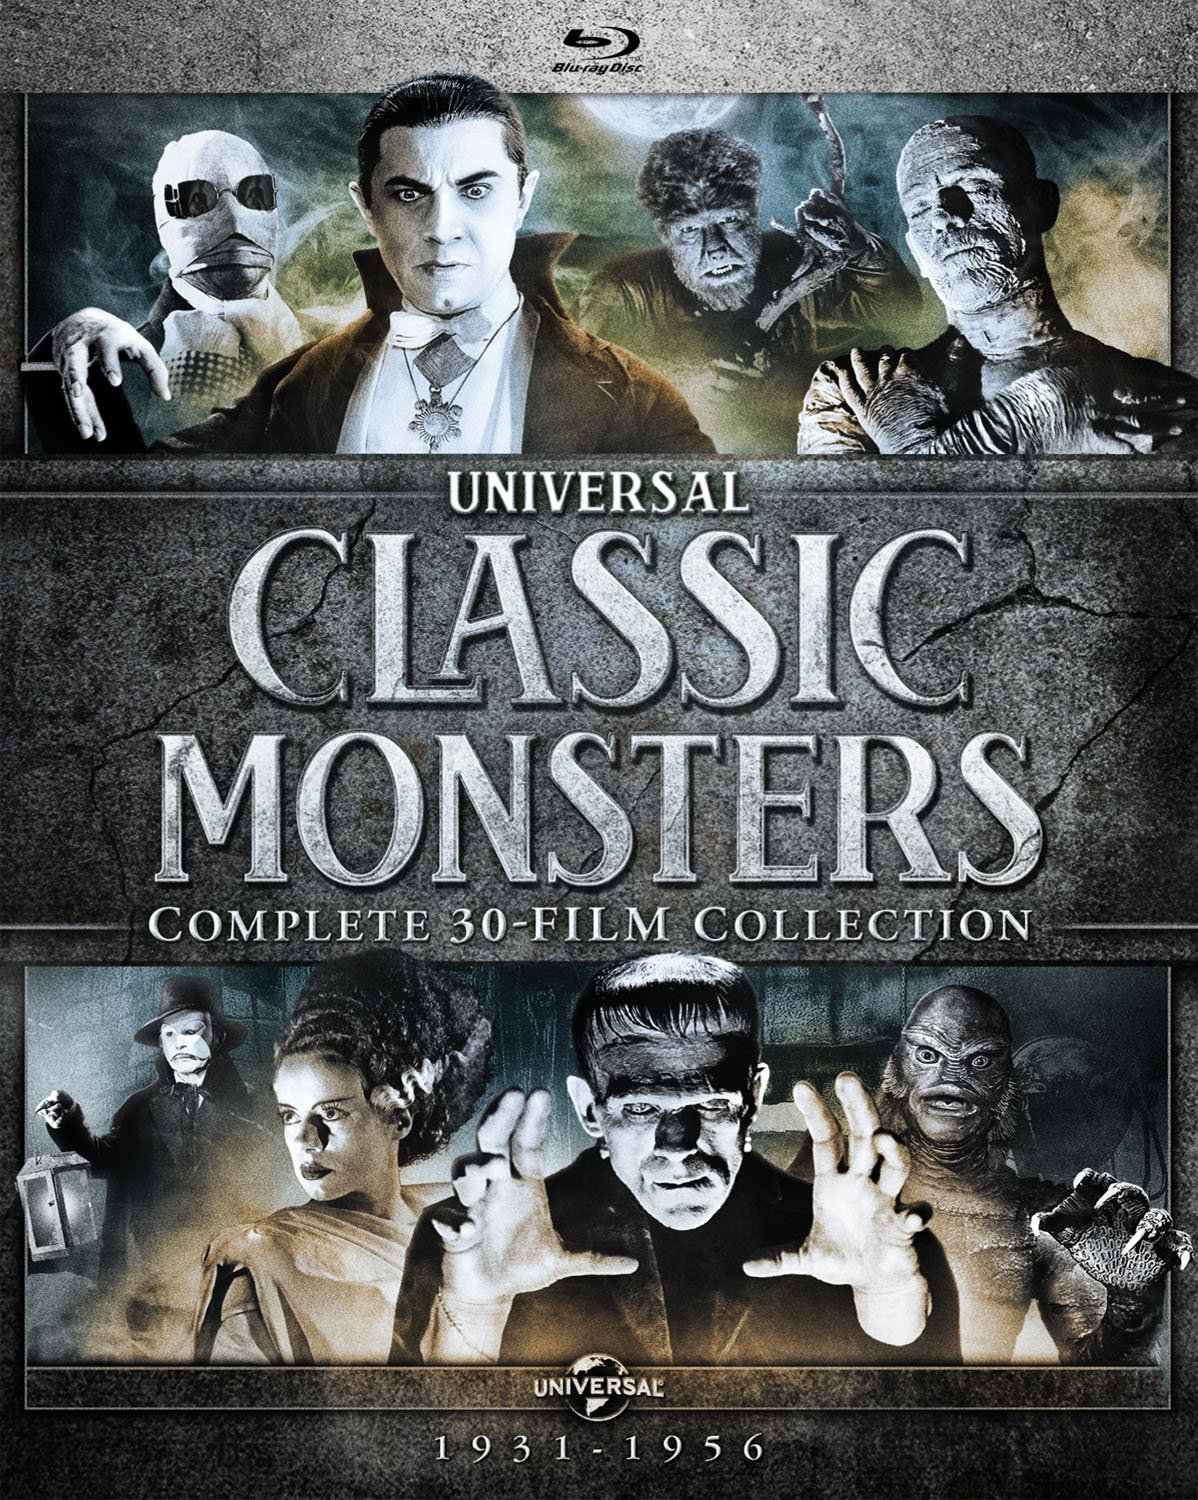 Blu-ray : Universal Classic Monsters: Complete 30-film Coll (Boxed Set, 24PC)